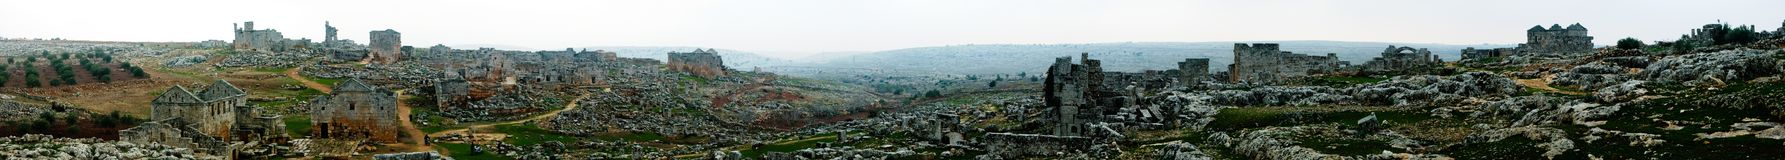 Free Panorama Of Ruined Abandoned Dead City Serjilla In Syria Stock Photo - 111045890